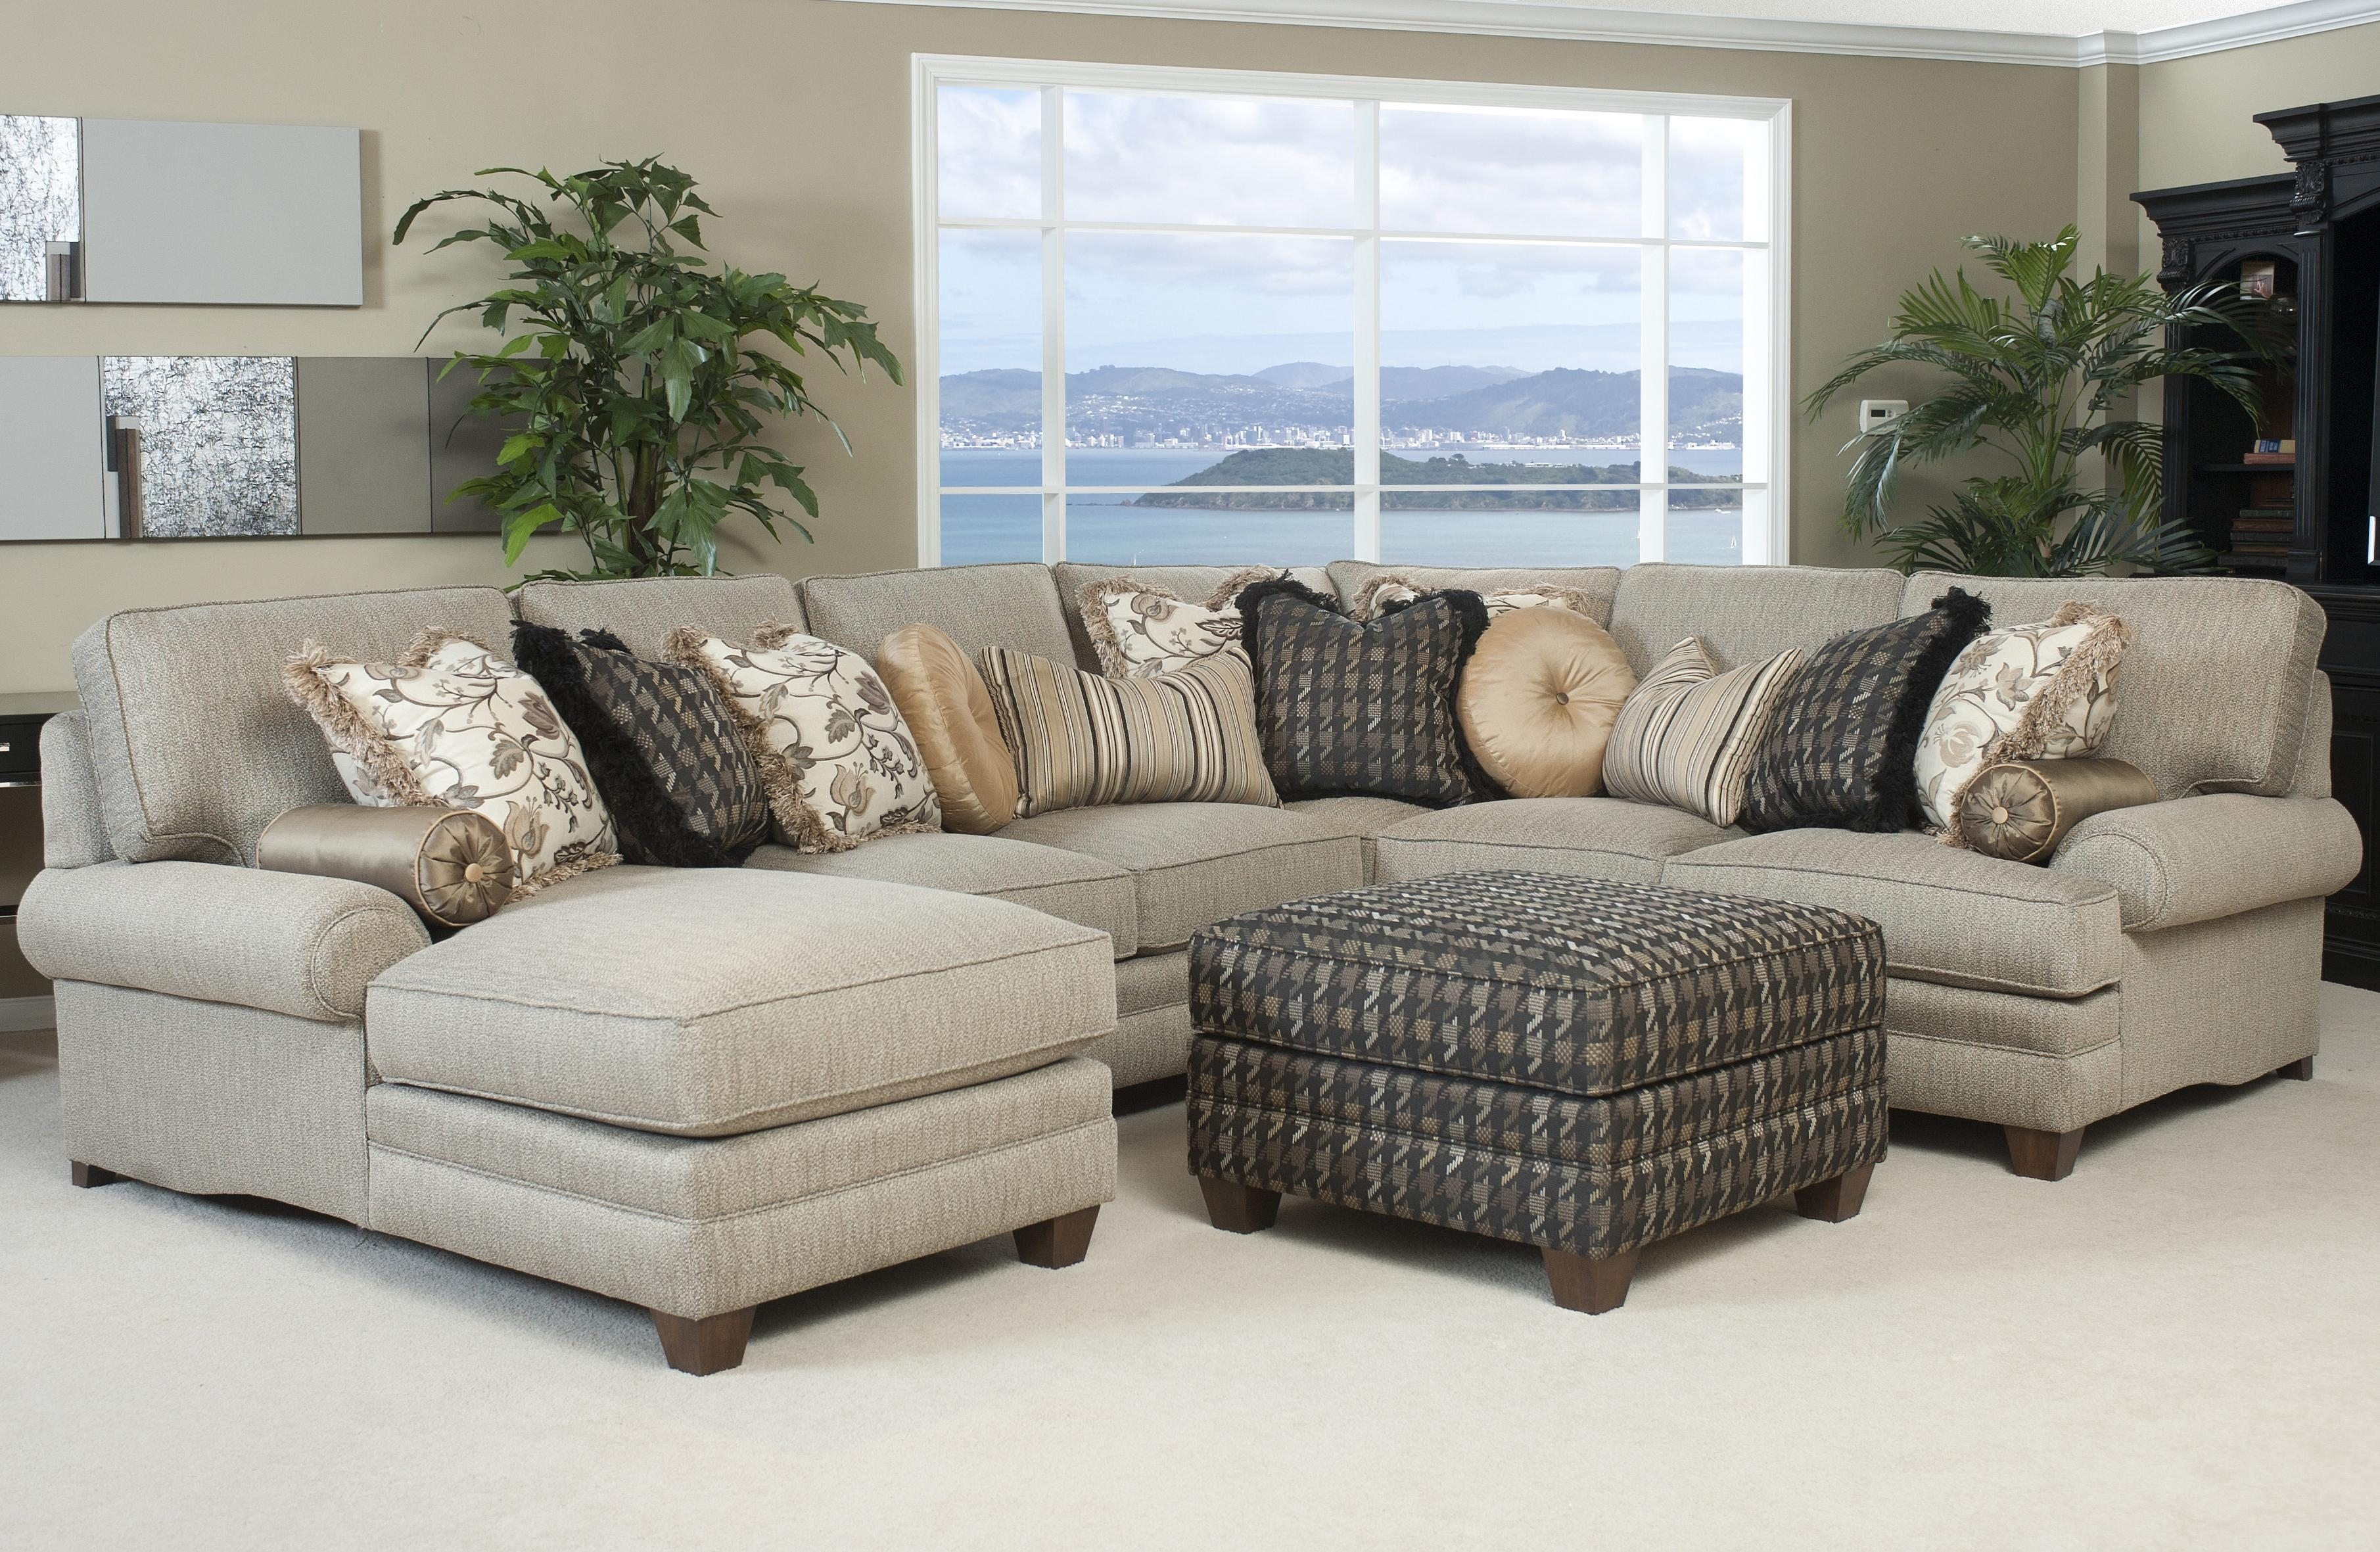 Most Comfortable Leather Sectional Sofa • Leather Sofa Throughout Comfy Sectional Sofas (View 5 of 10)